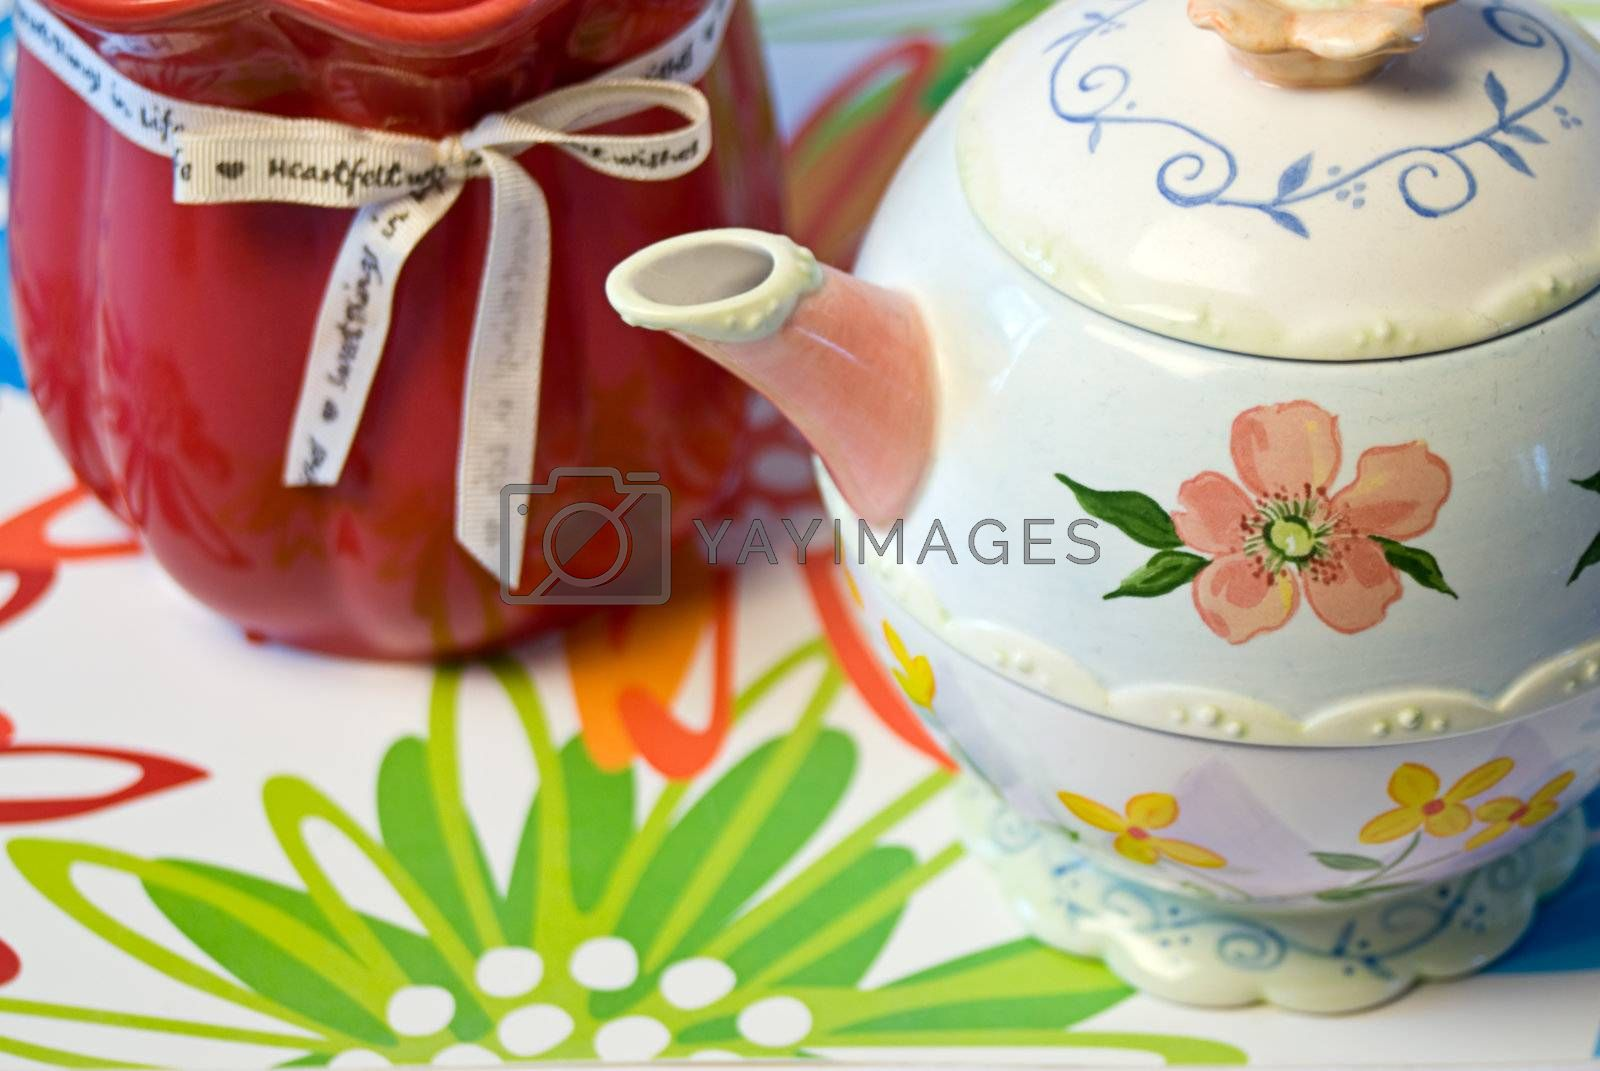 Mothers Day candle and teapot on a floral placemat